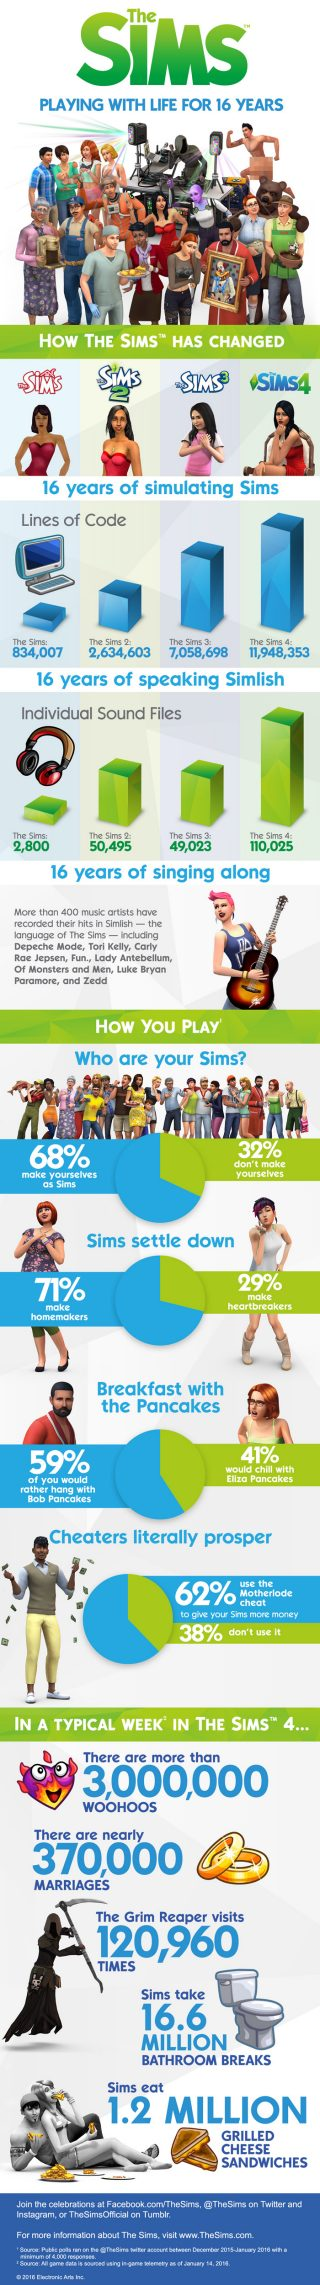 Celebrate The Sims Anniversary With Fun Wallpapers and an Infographic